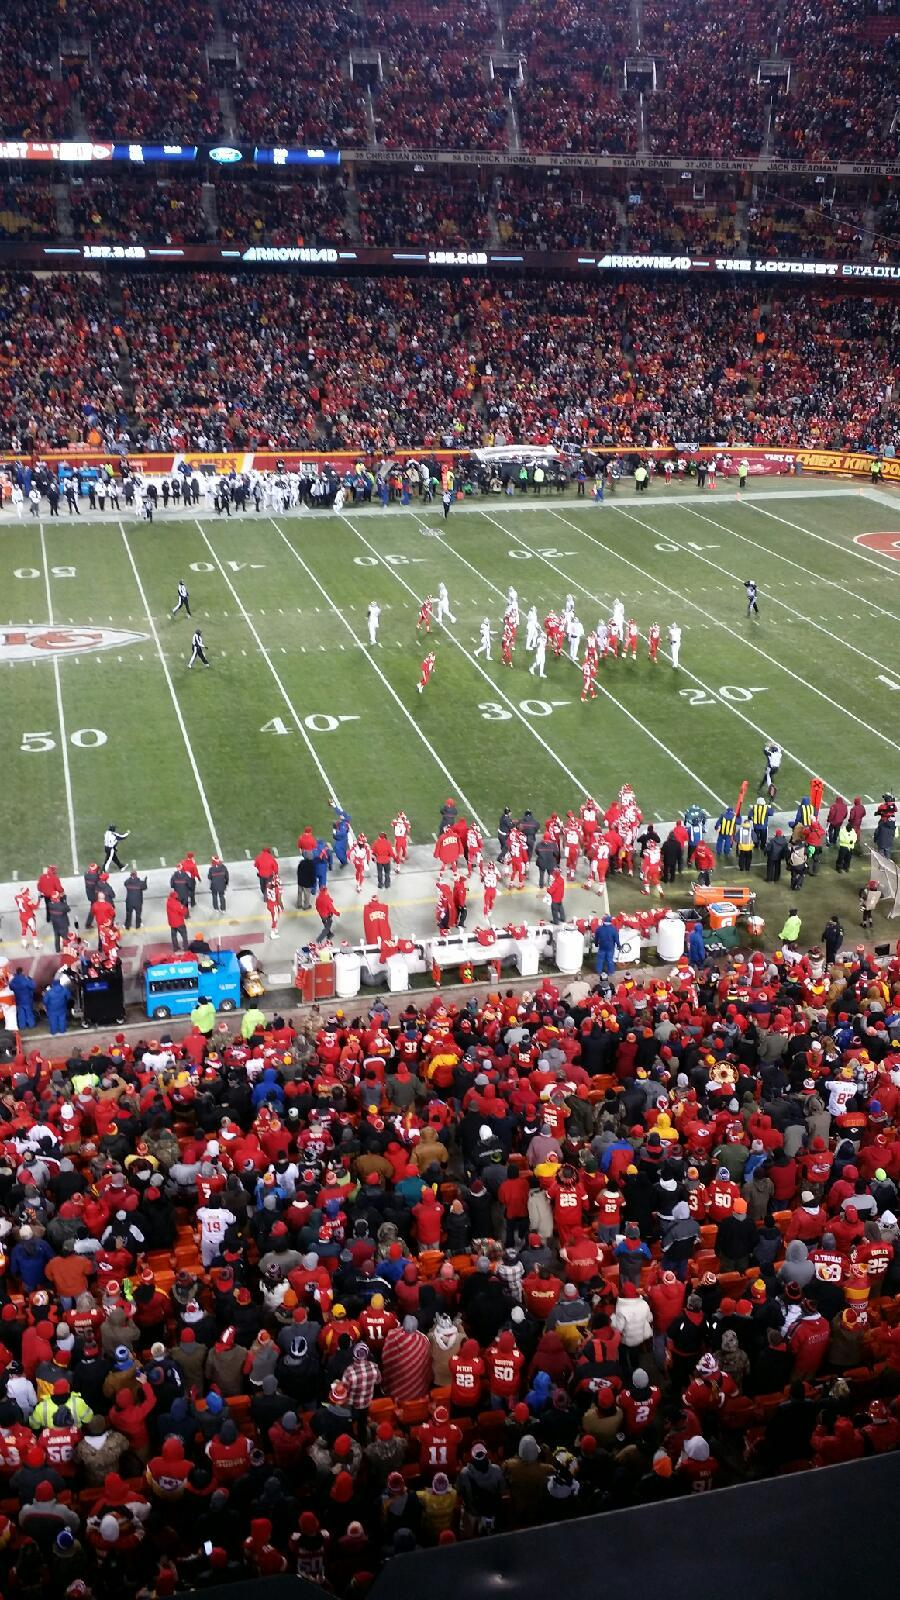 Arrowhead Stadium Section 324 Row 1 Seat 12